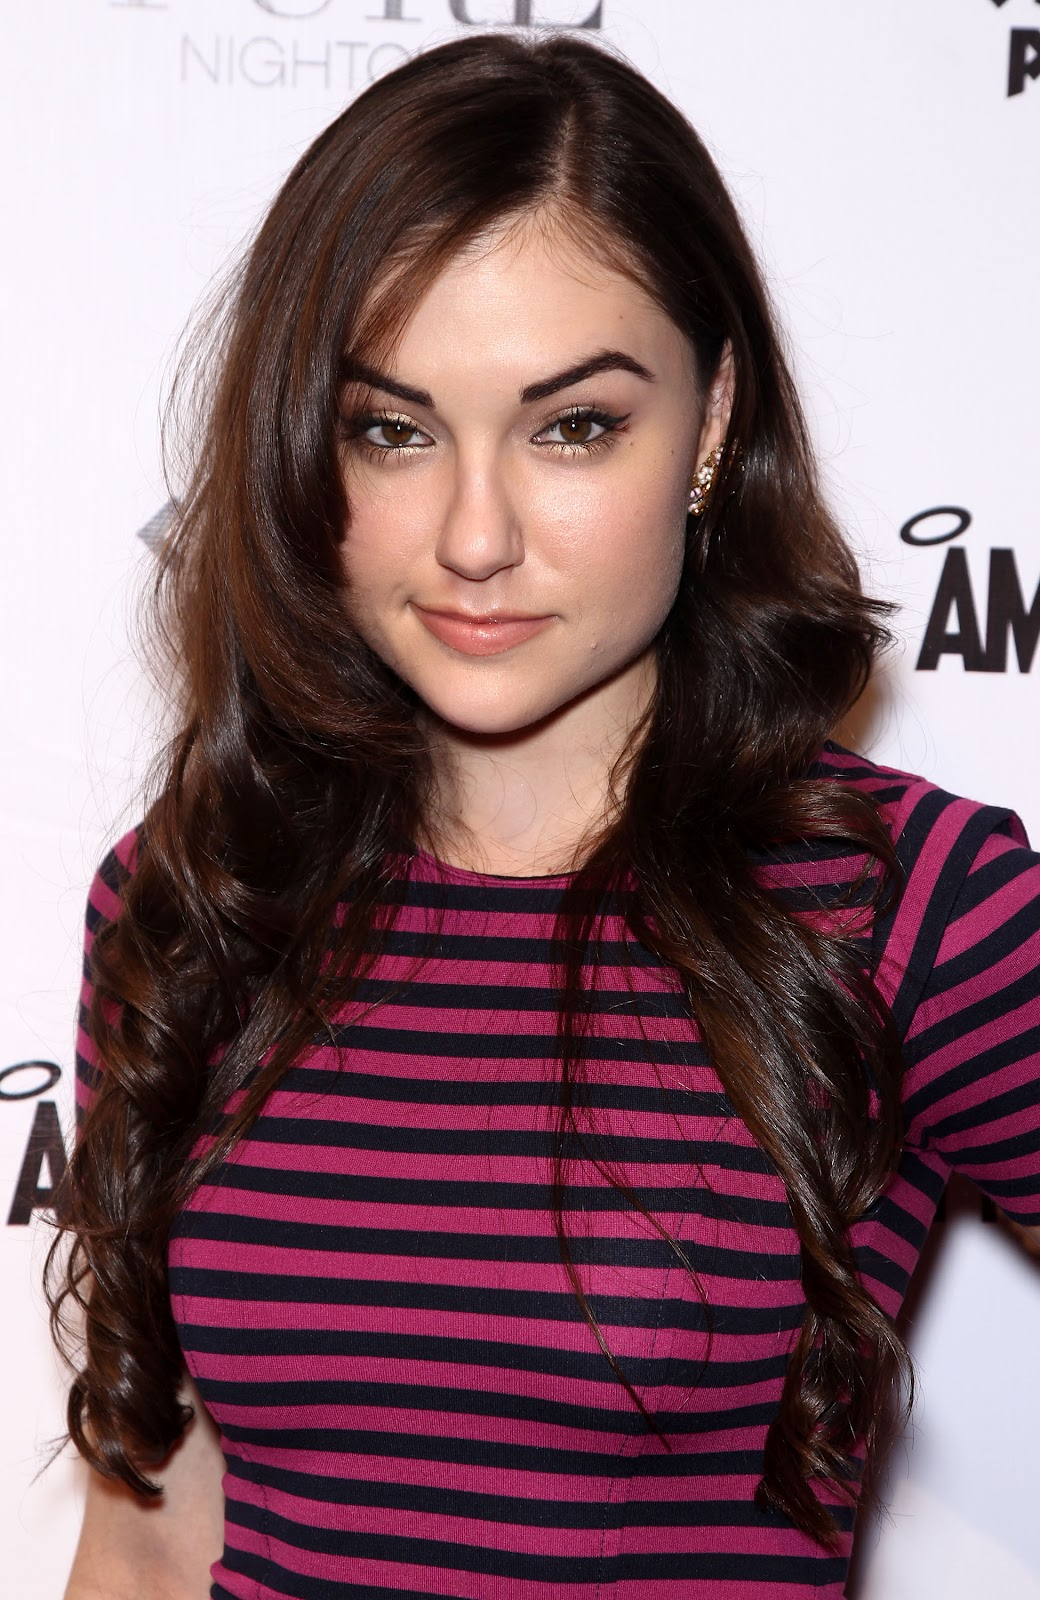 Sasha Grey nudes (27 photo), video Fappening, Snapchat, see through 2018